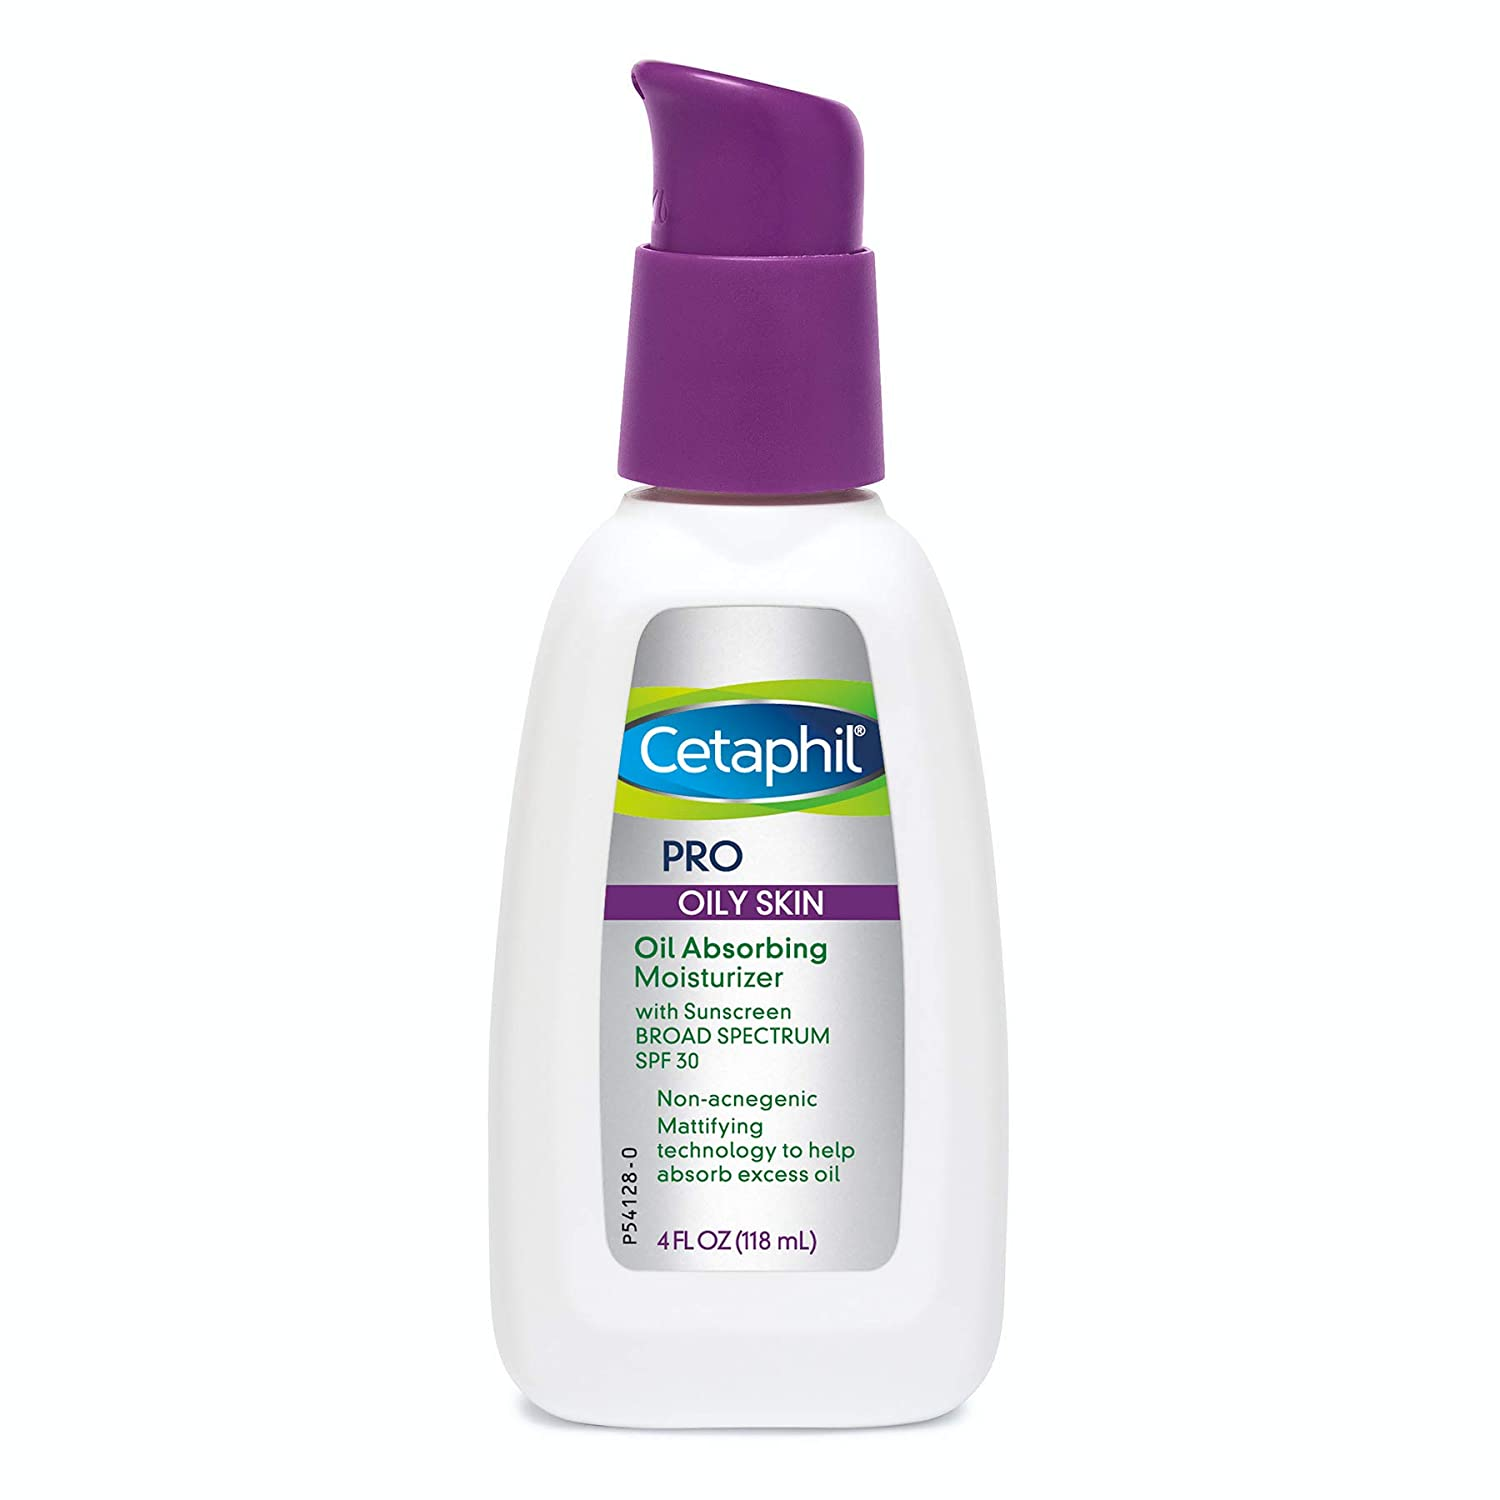 cetaphil face moisturizer for oily skin